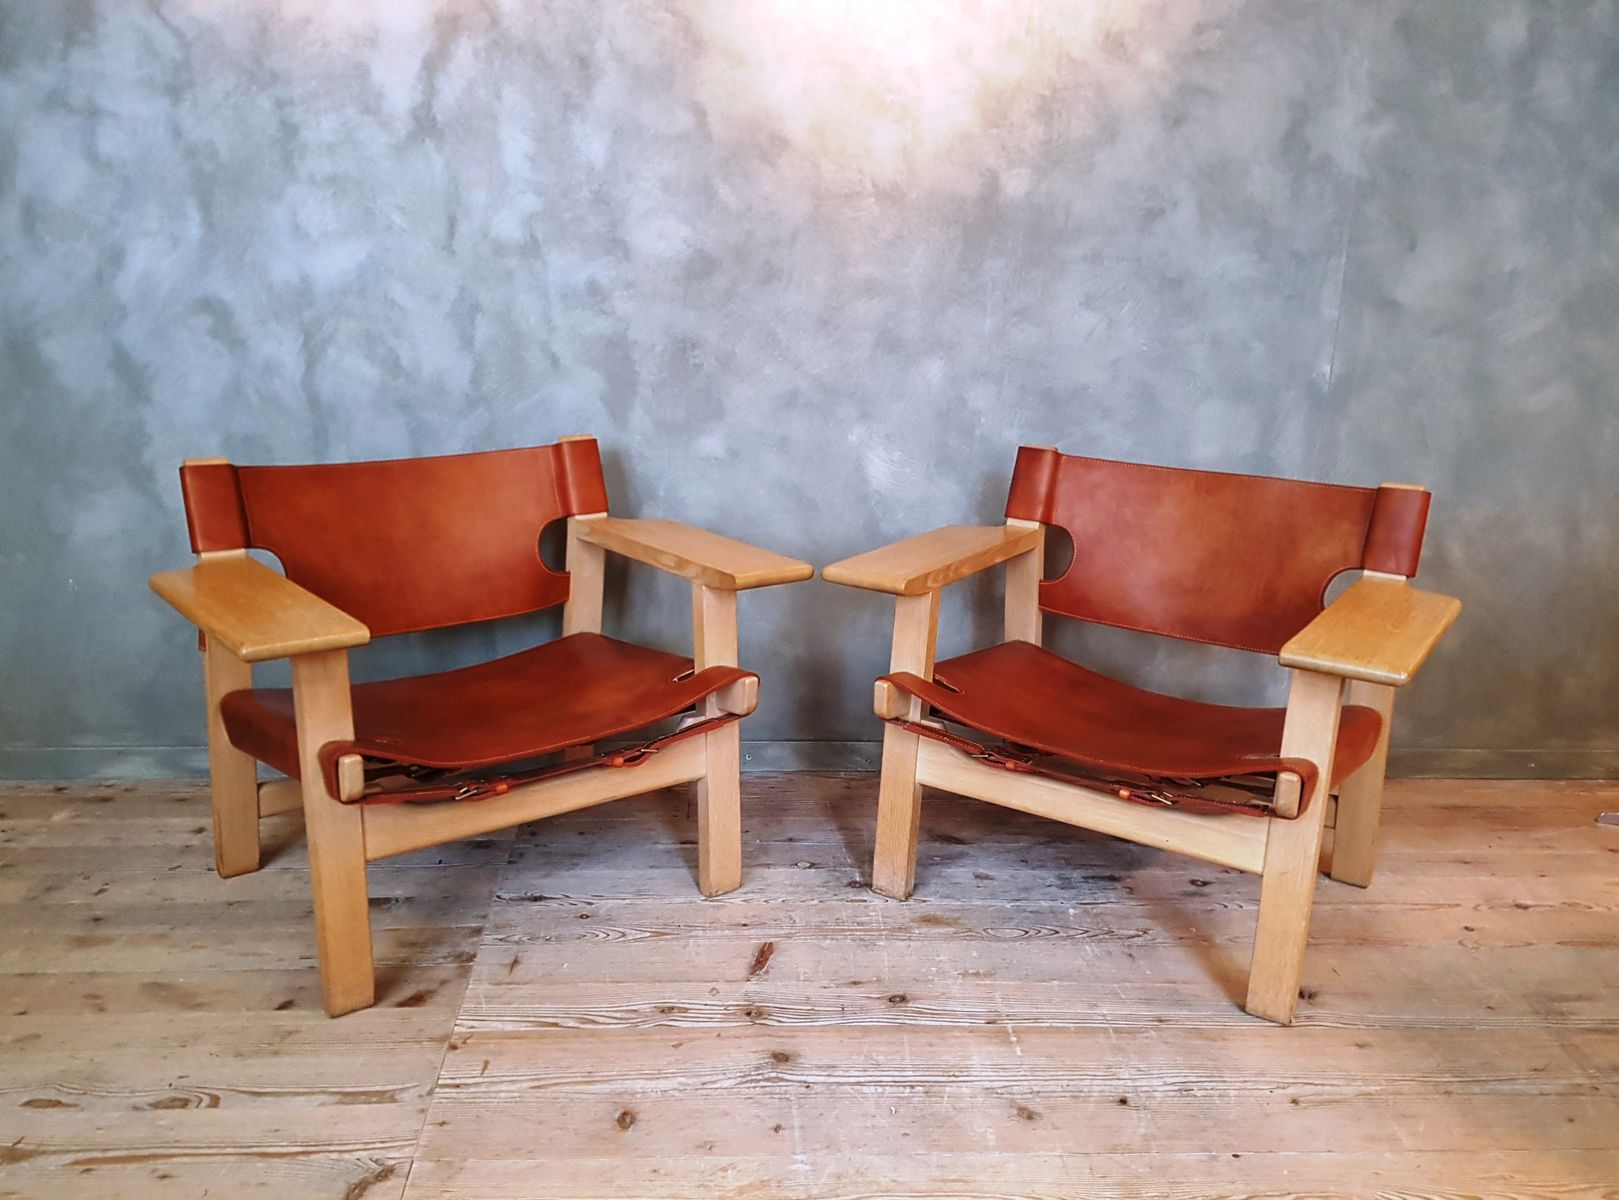 Spanish Chair by B¸rge Mogensen for Frederica 1950s for sale at